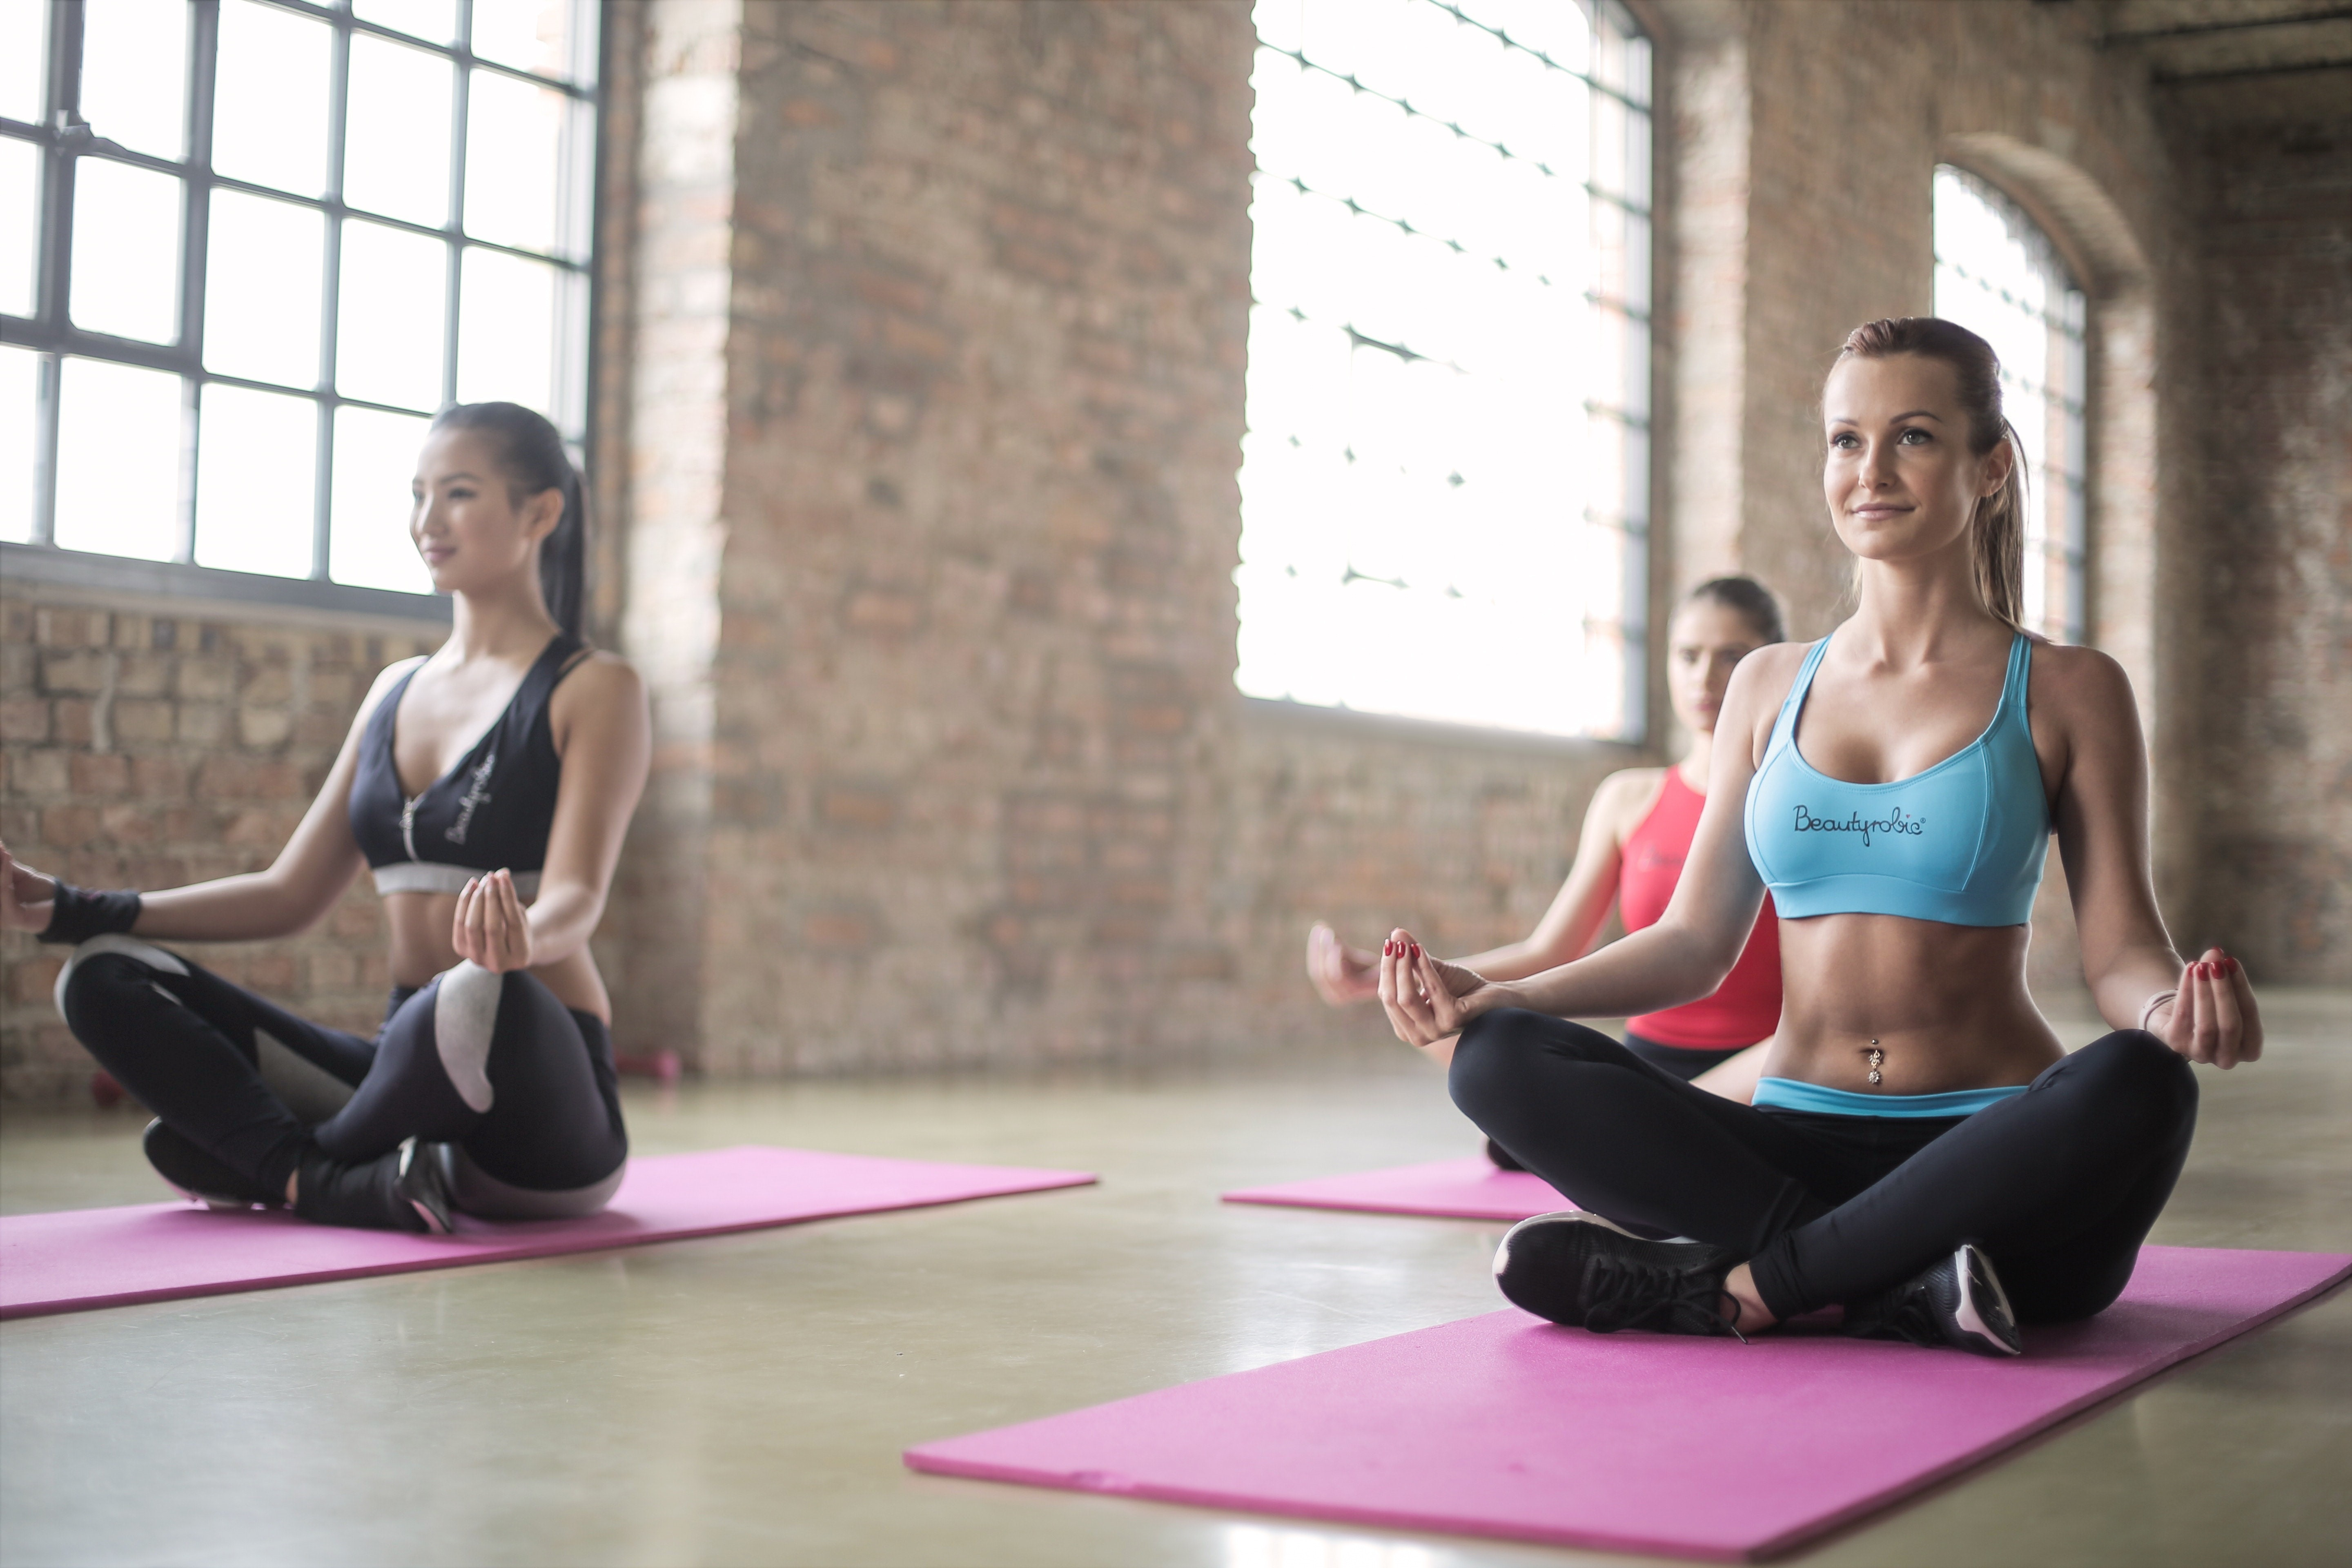 Write-ups about yoga instructors